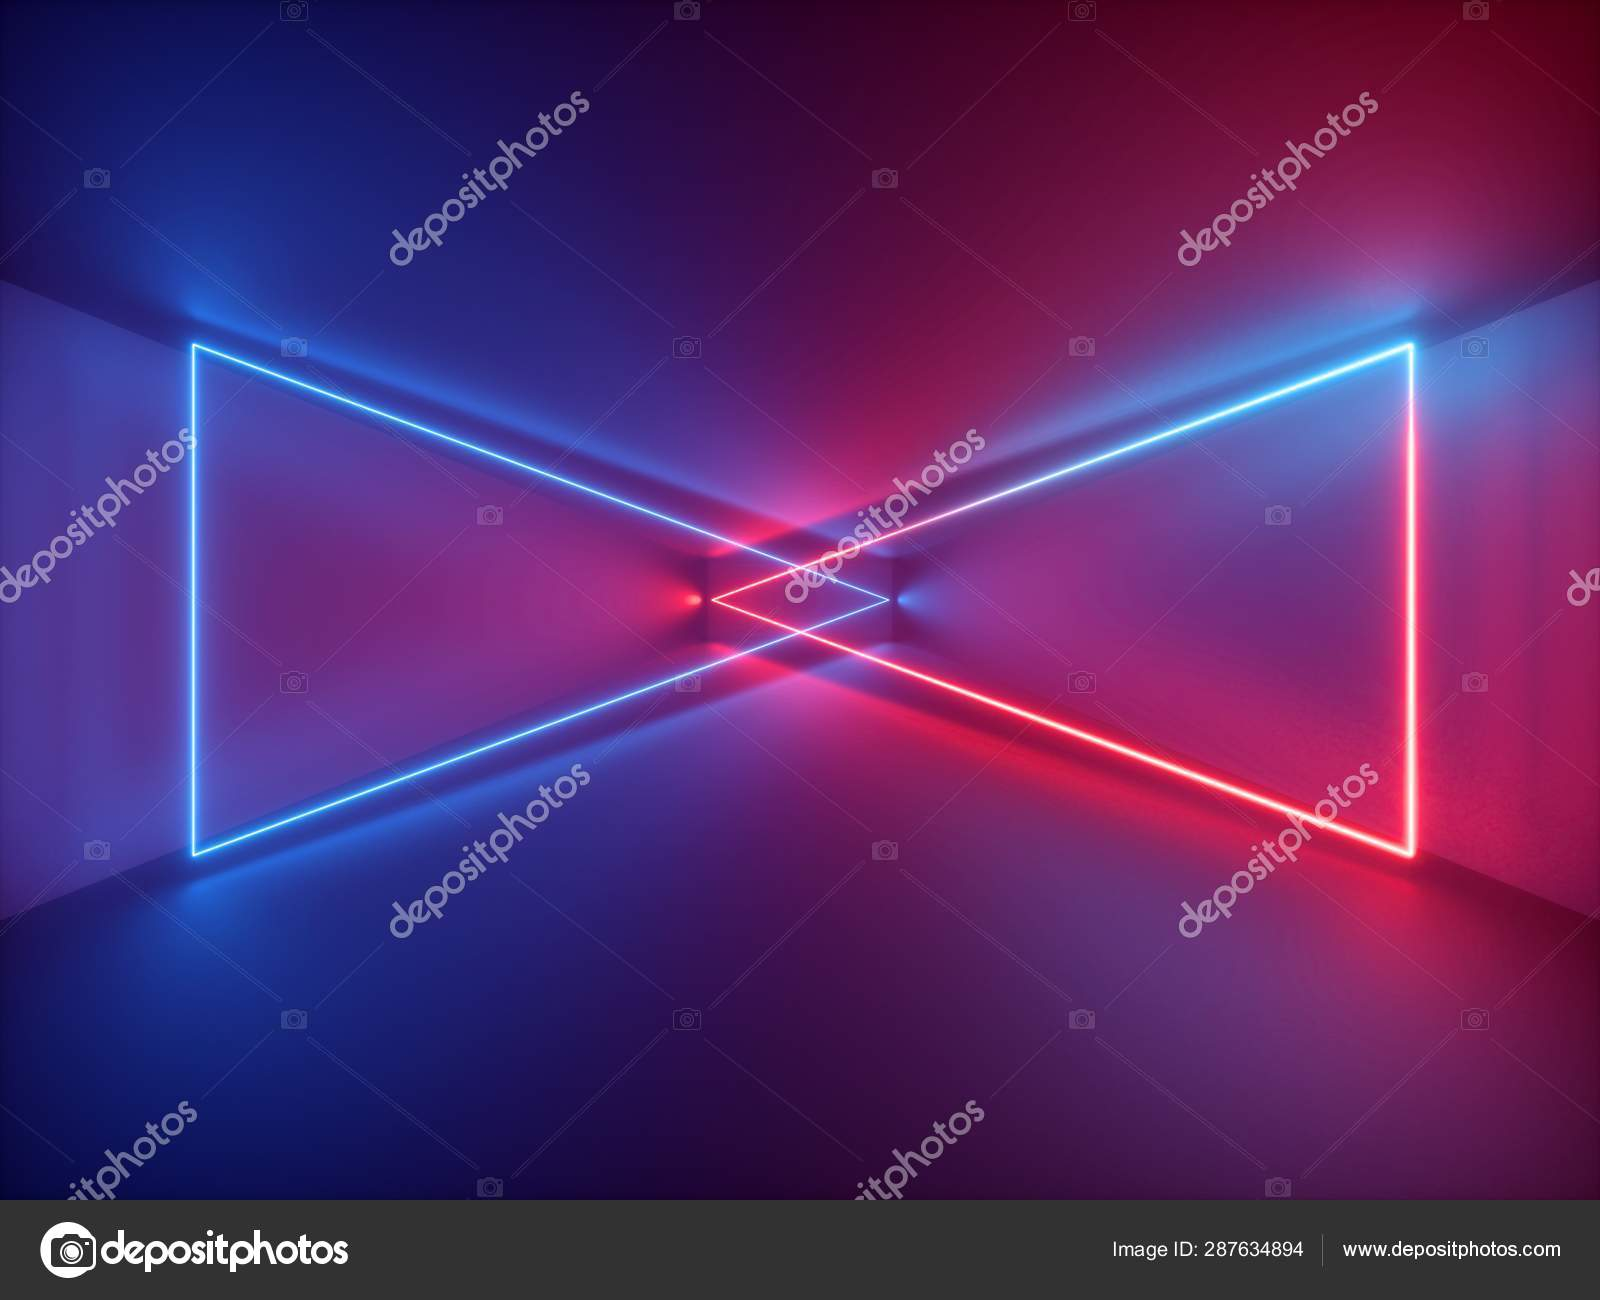 Tremendous 3D Render Red Blue Neon Light Abstract Background With Download Free Architecture Designs Scobabritishbridgeorg